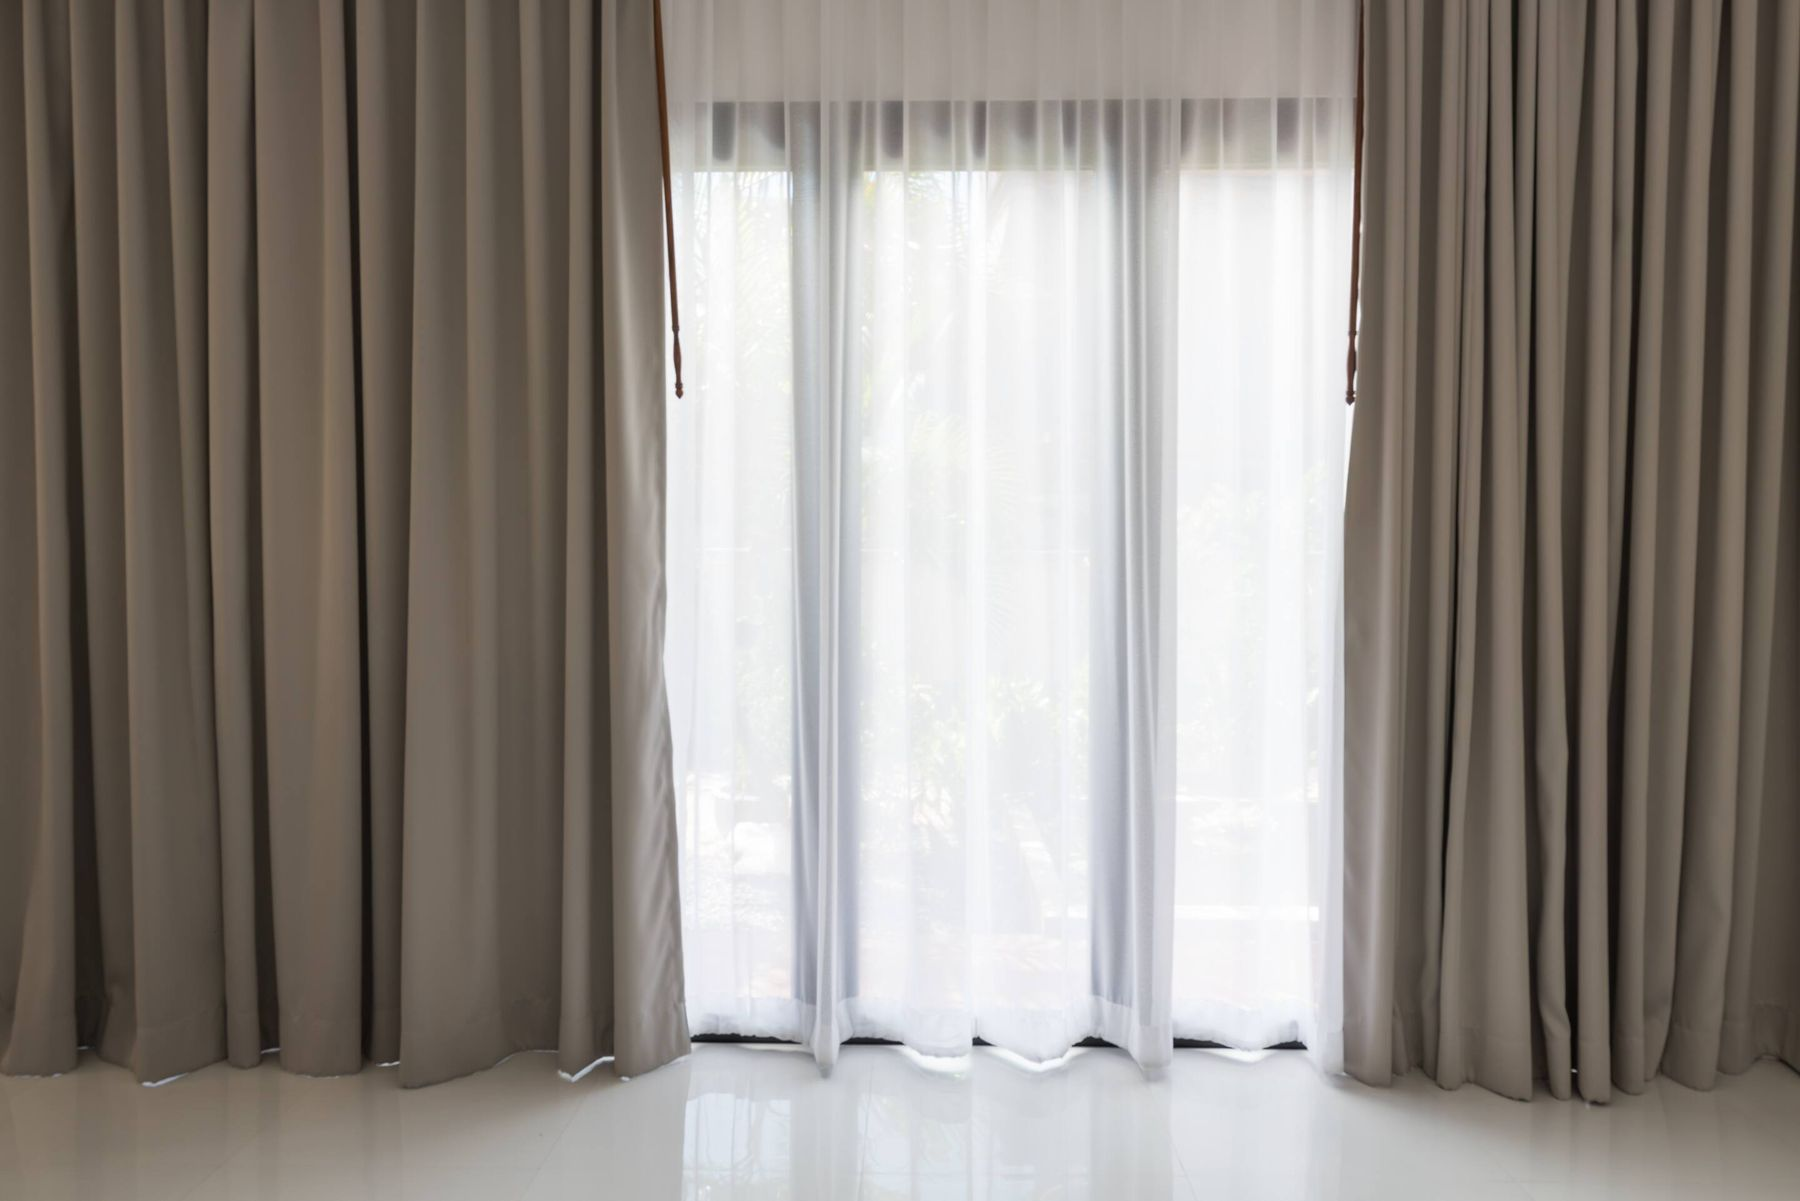 7) Window Curtains